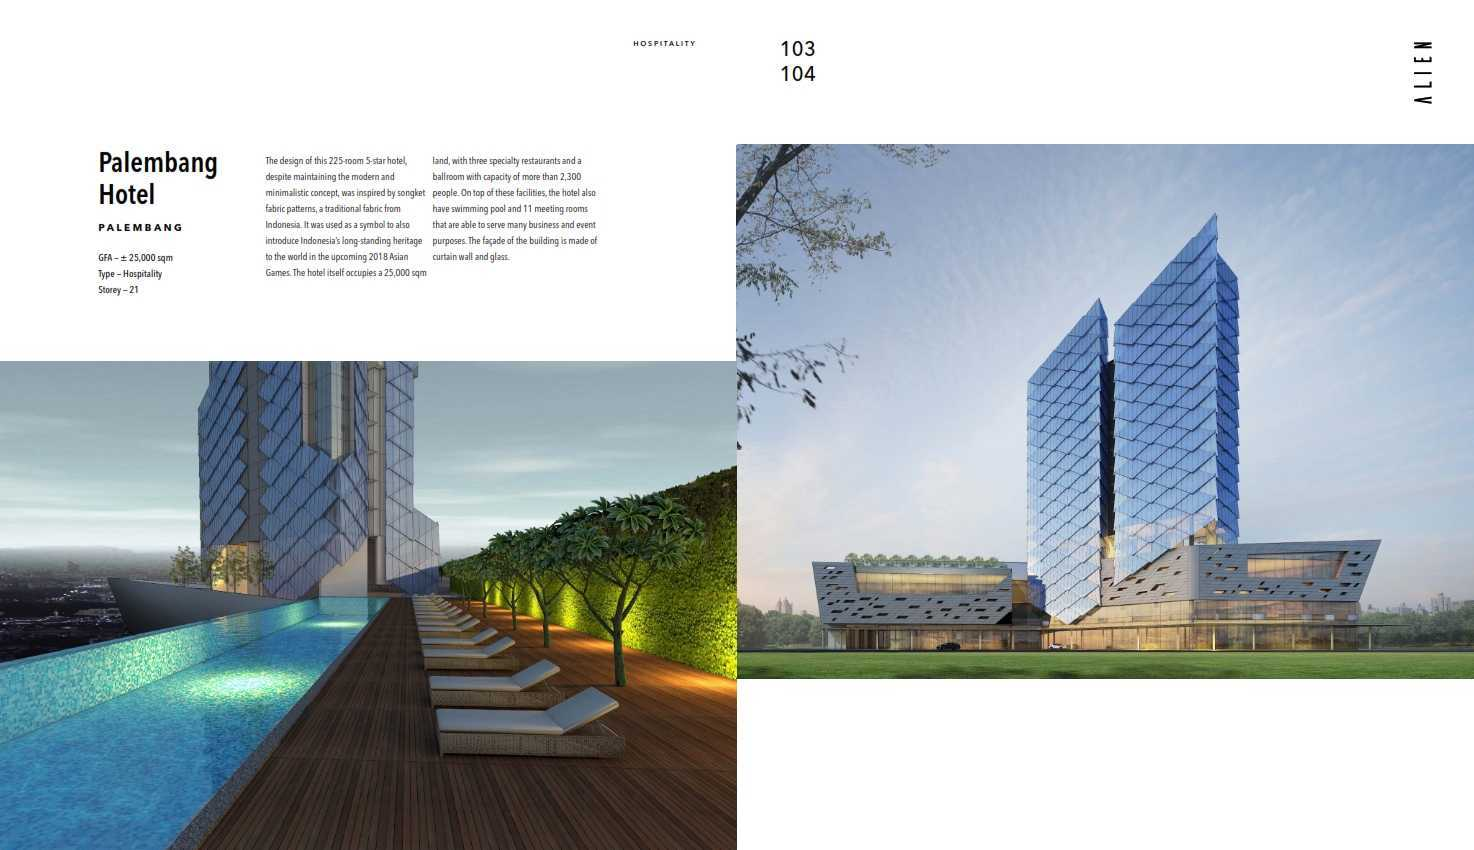 Alien Design Consultant Alien Dc Hotels & Resort Porto Palembang Palembang Aliencompro260Mmx300Mm12Updated052   44719